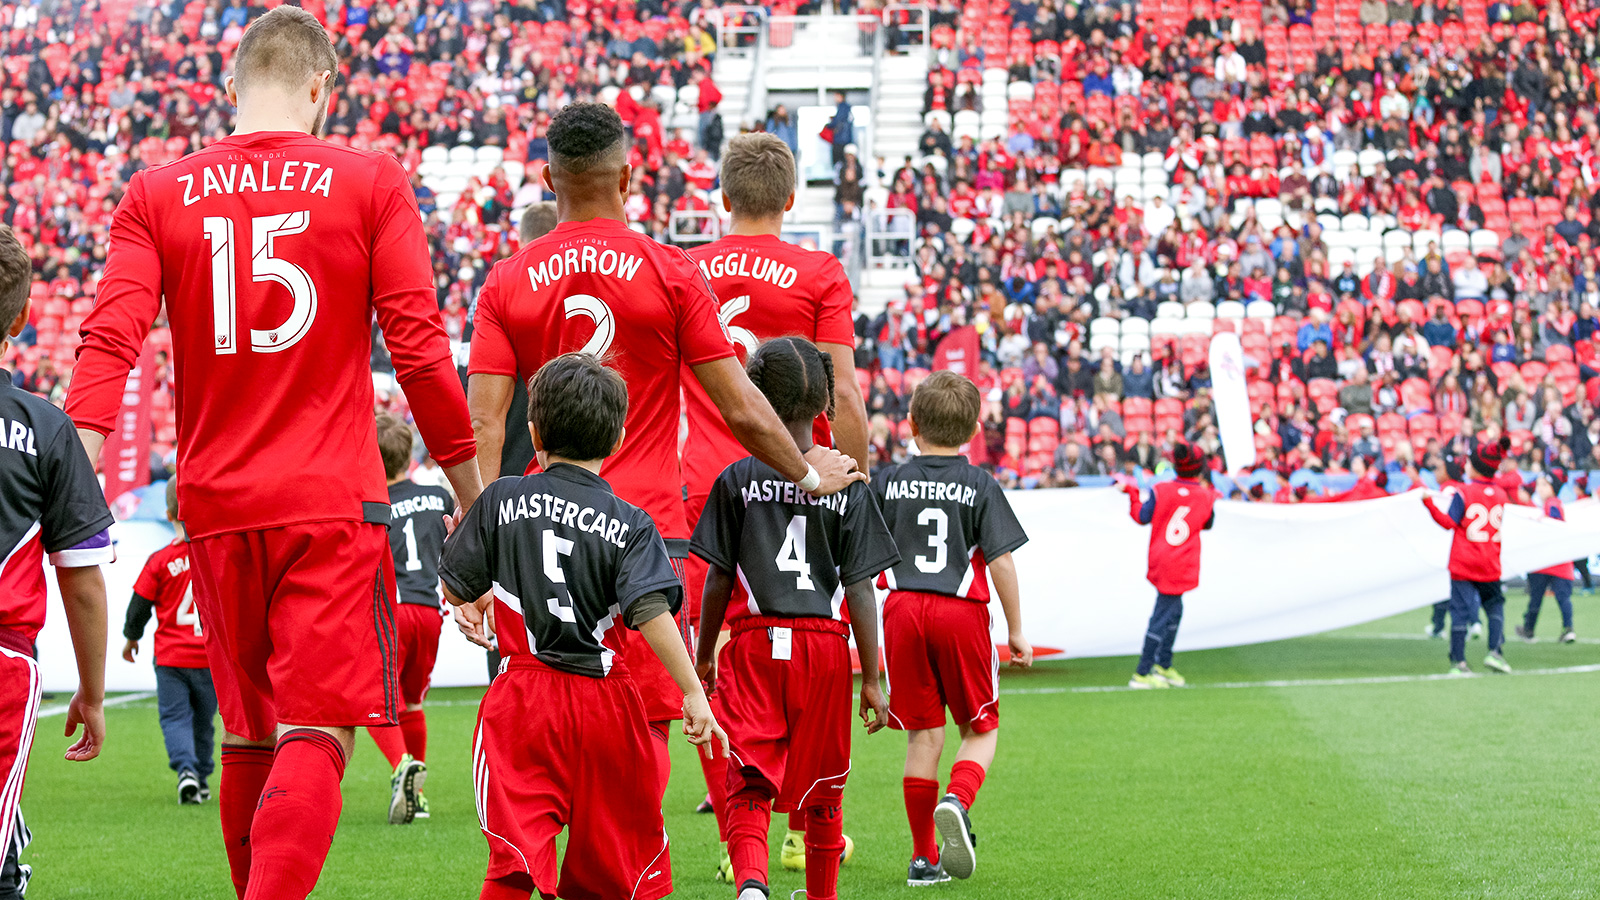 Players take to the pitch in the opening ceremonies.